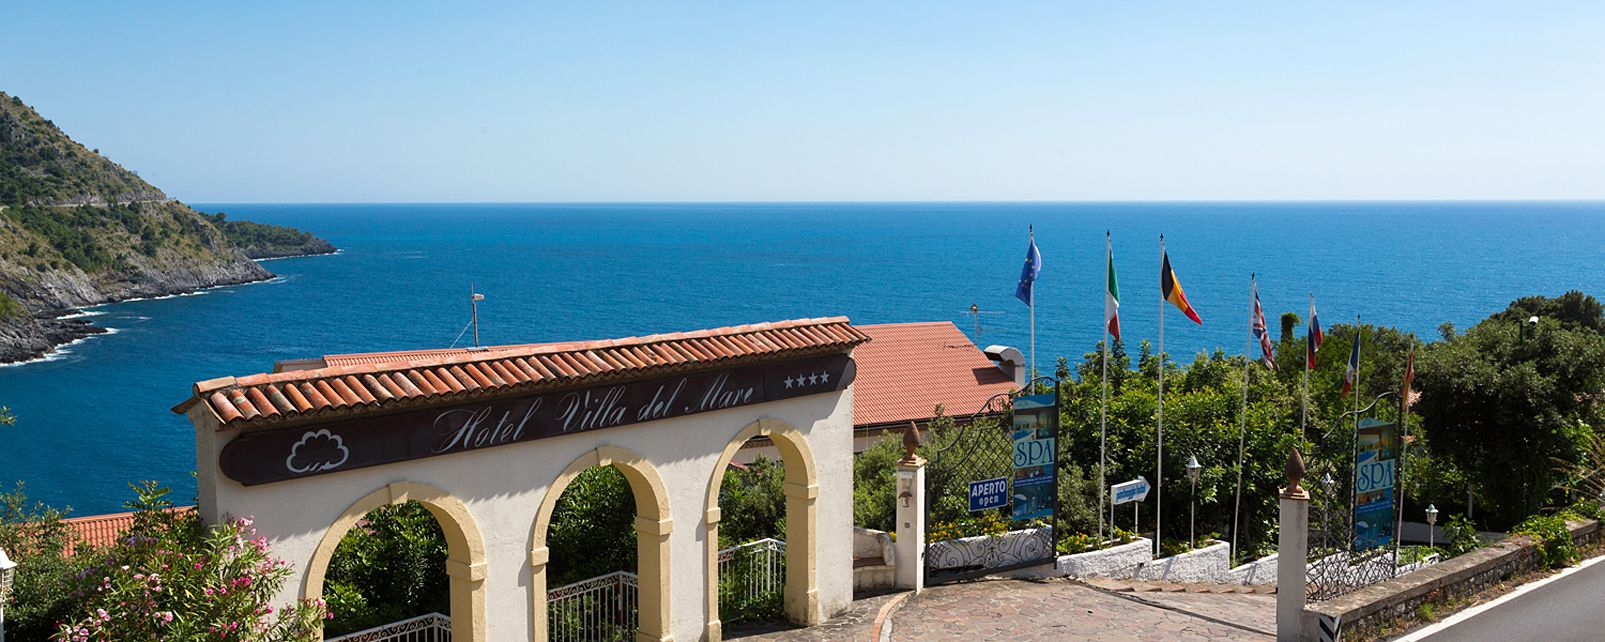 Hotel and Spa Villa del Mare